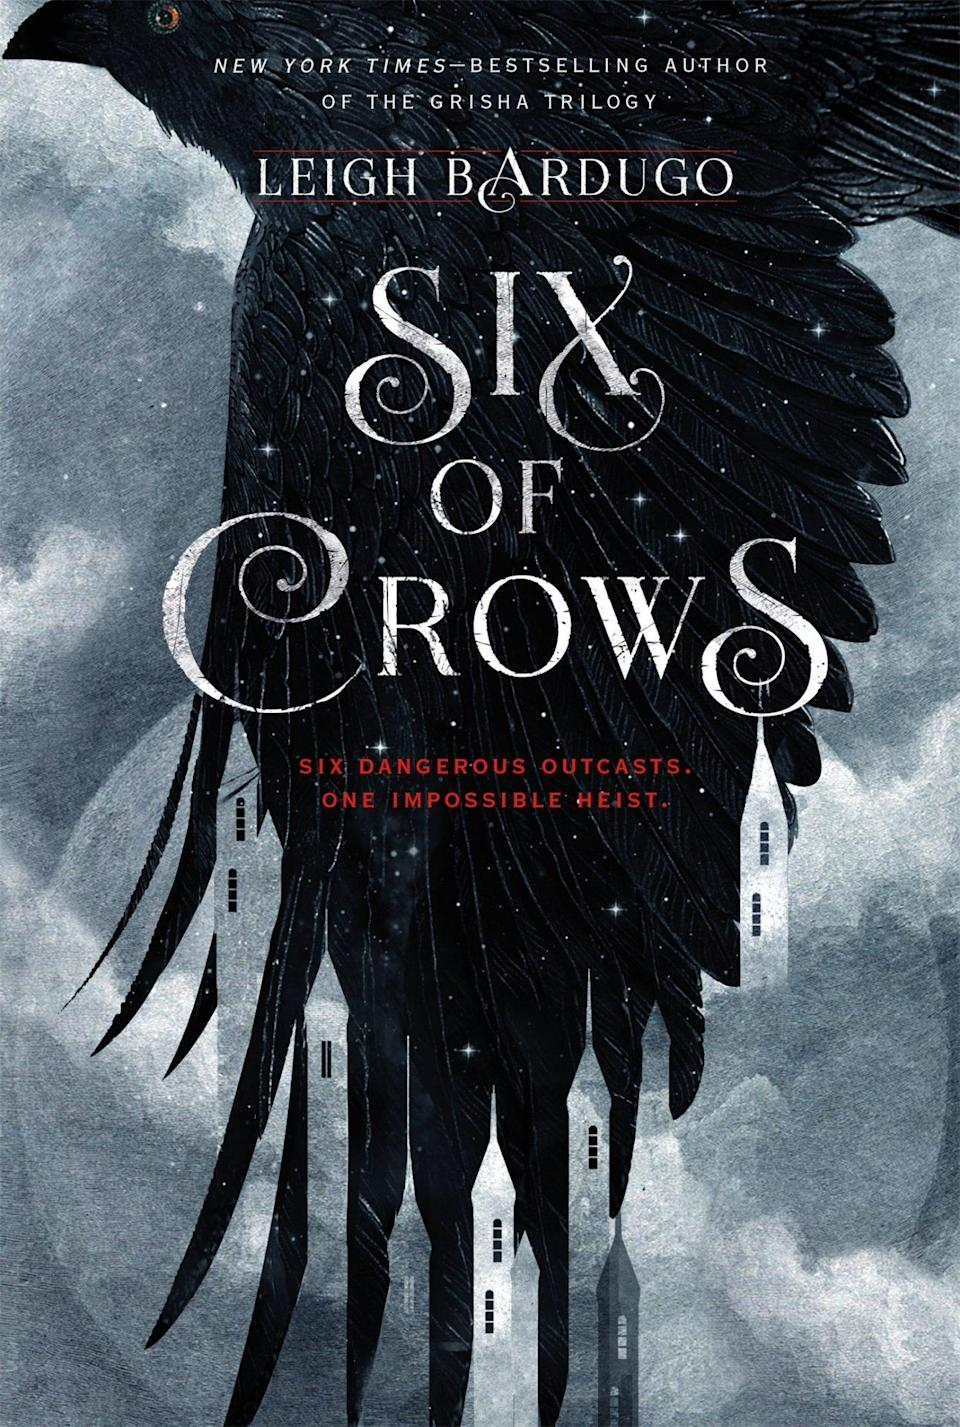 the cover for Six of Crows shows the outline of a crow and the text Six of Crows shows a